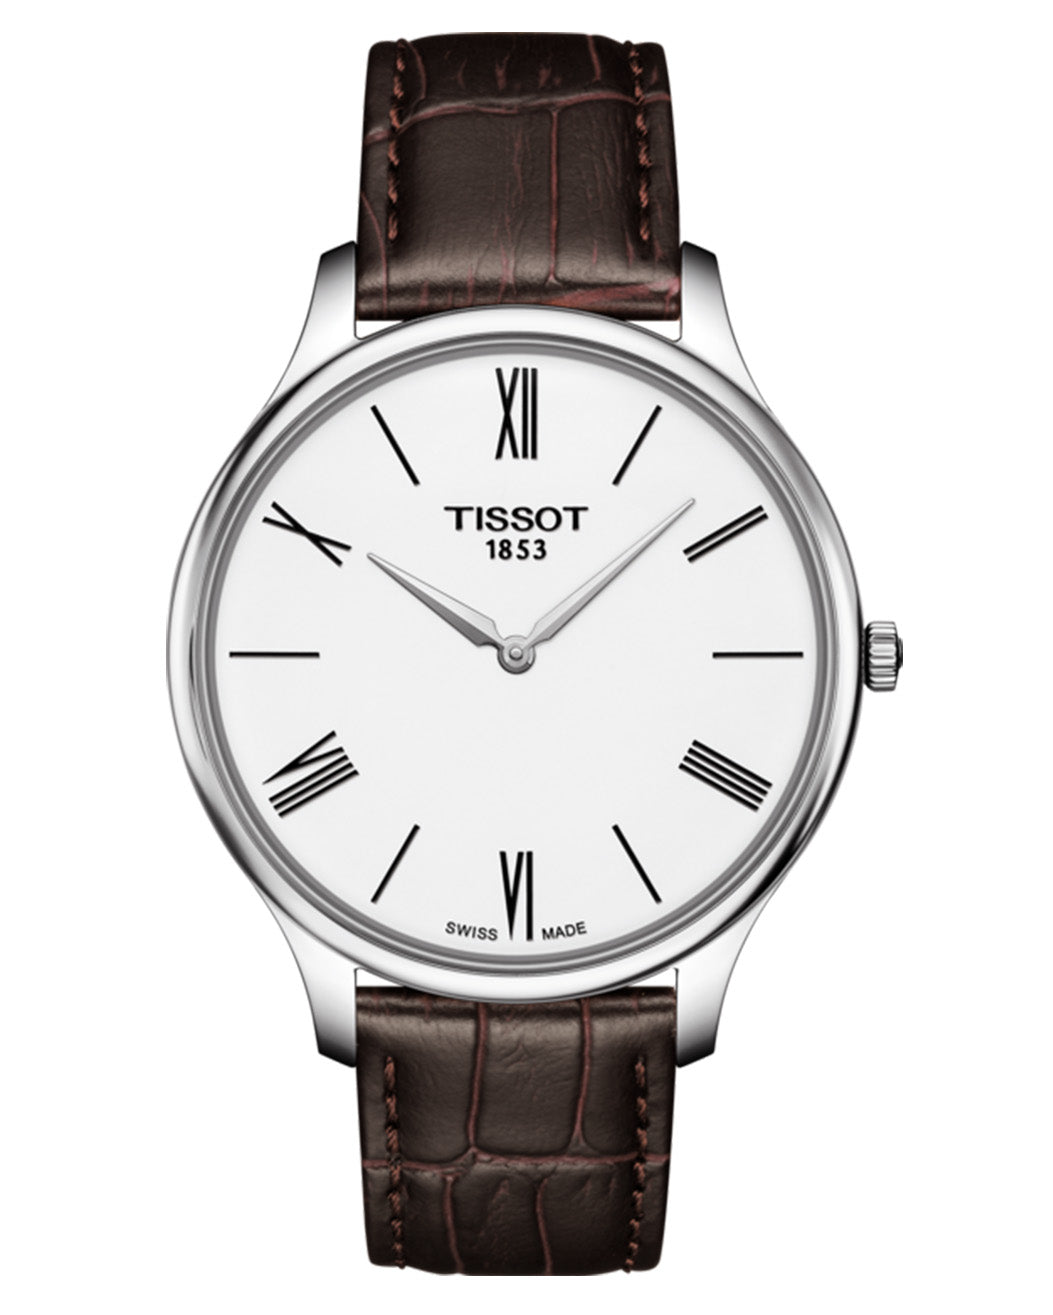 Tissot Tradition 5.5 Gents Leather Strap Watch